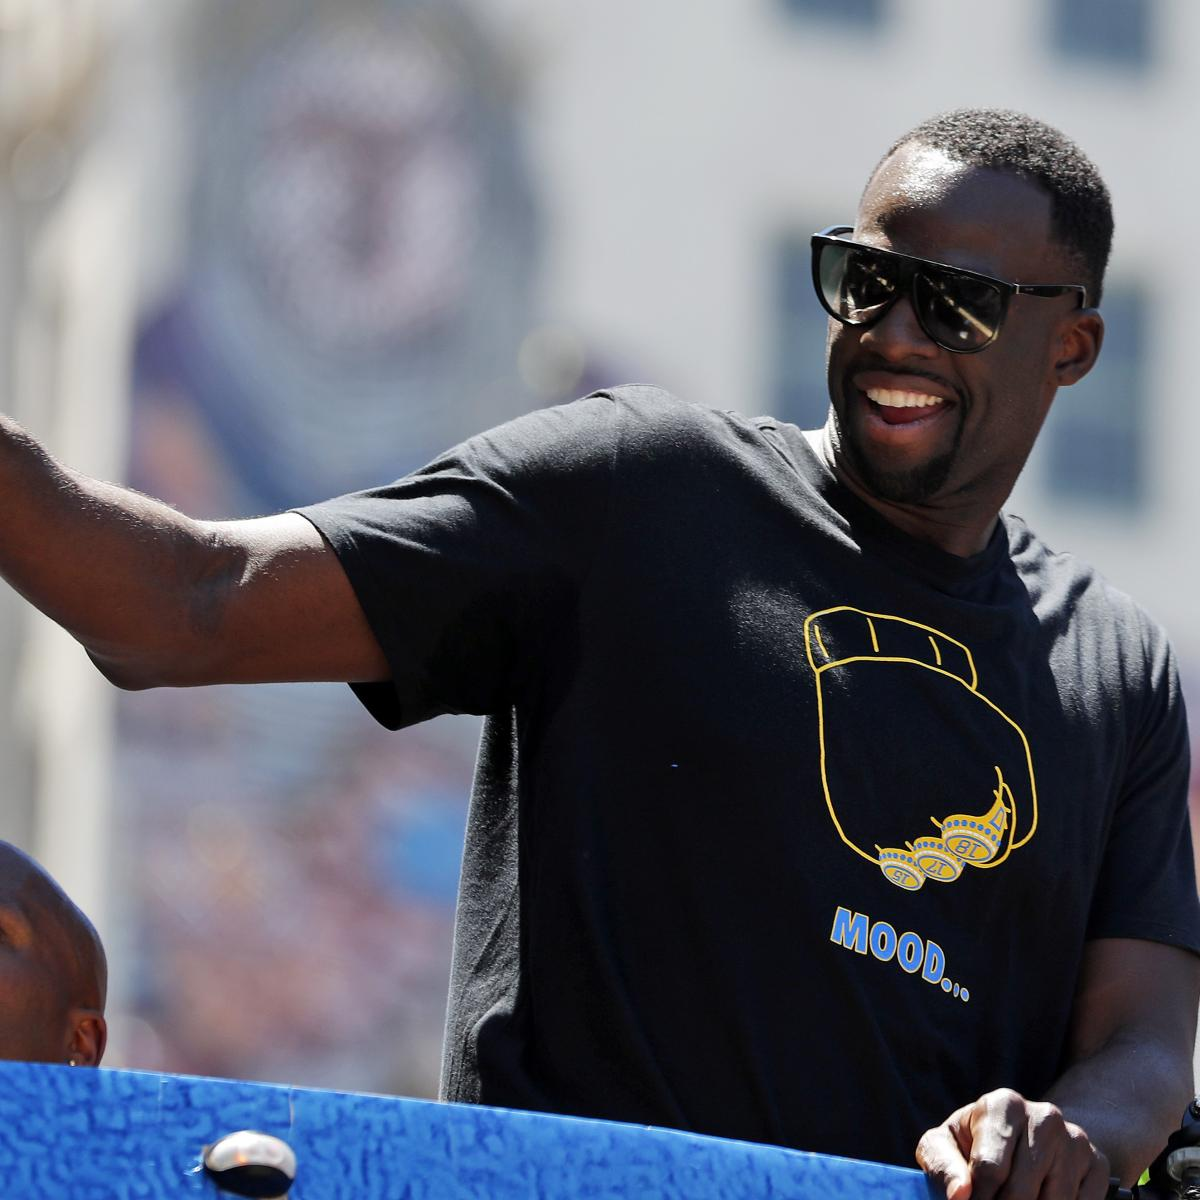 Draymond Green Told Tristan Thompson 'We Ain't Cut the Same' After NBA Finals